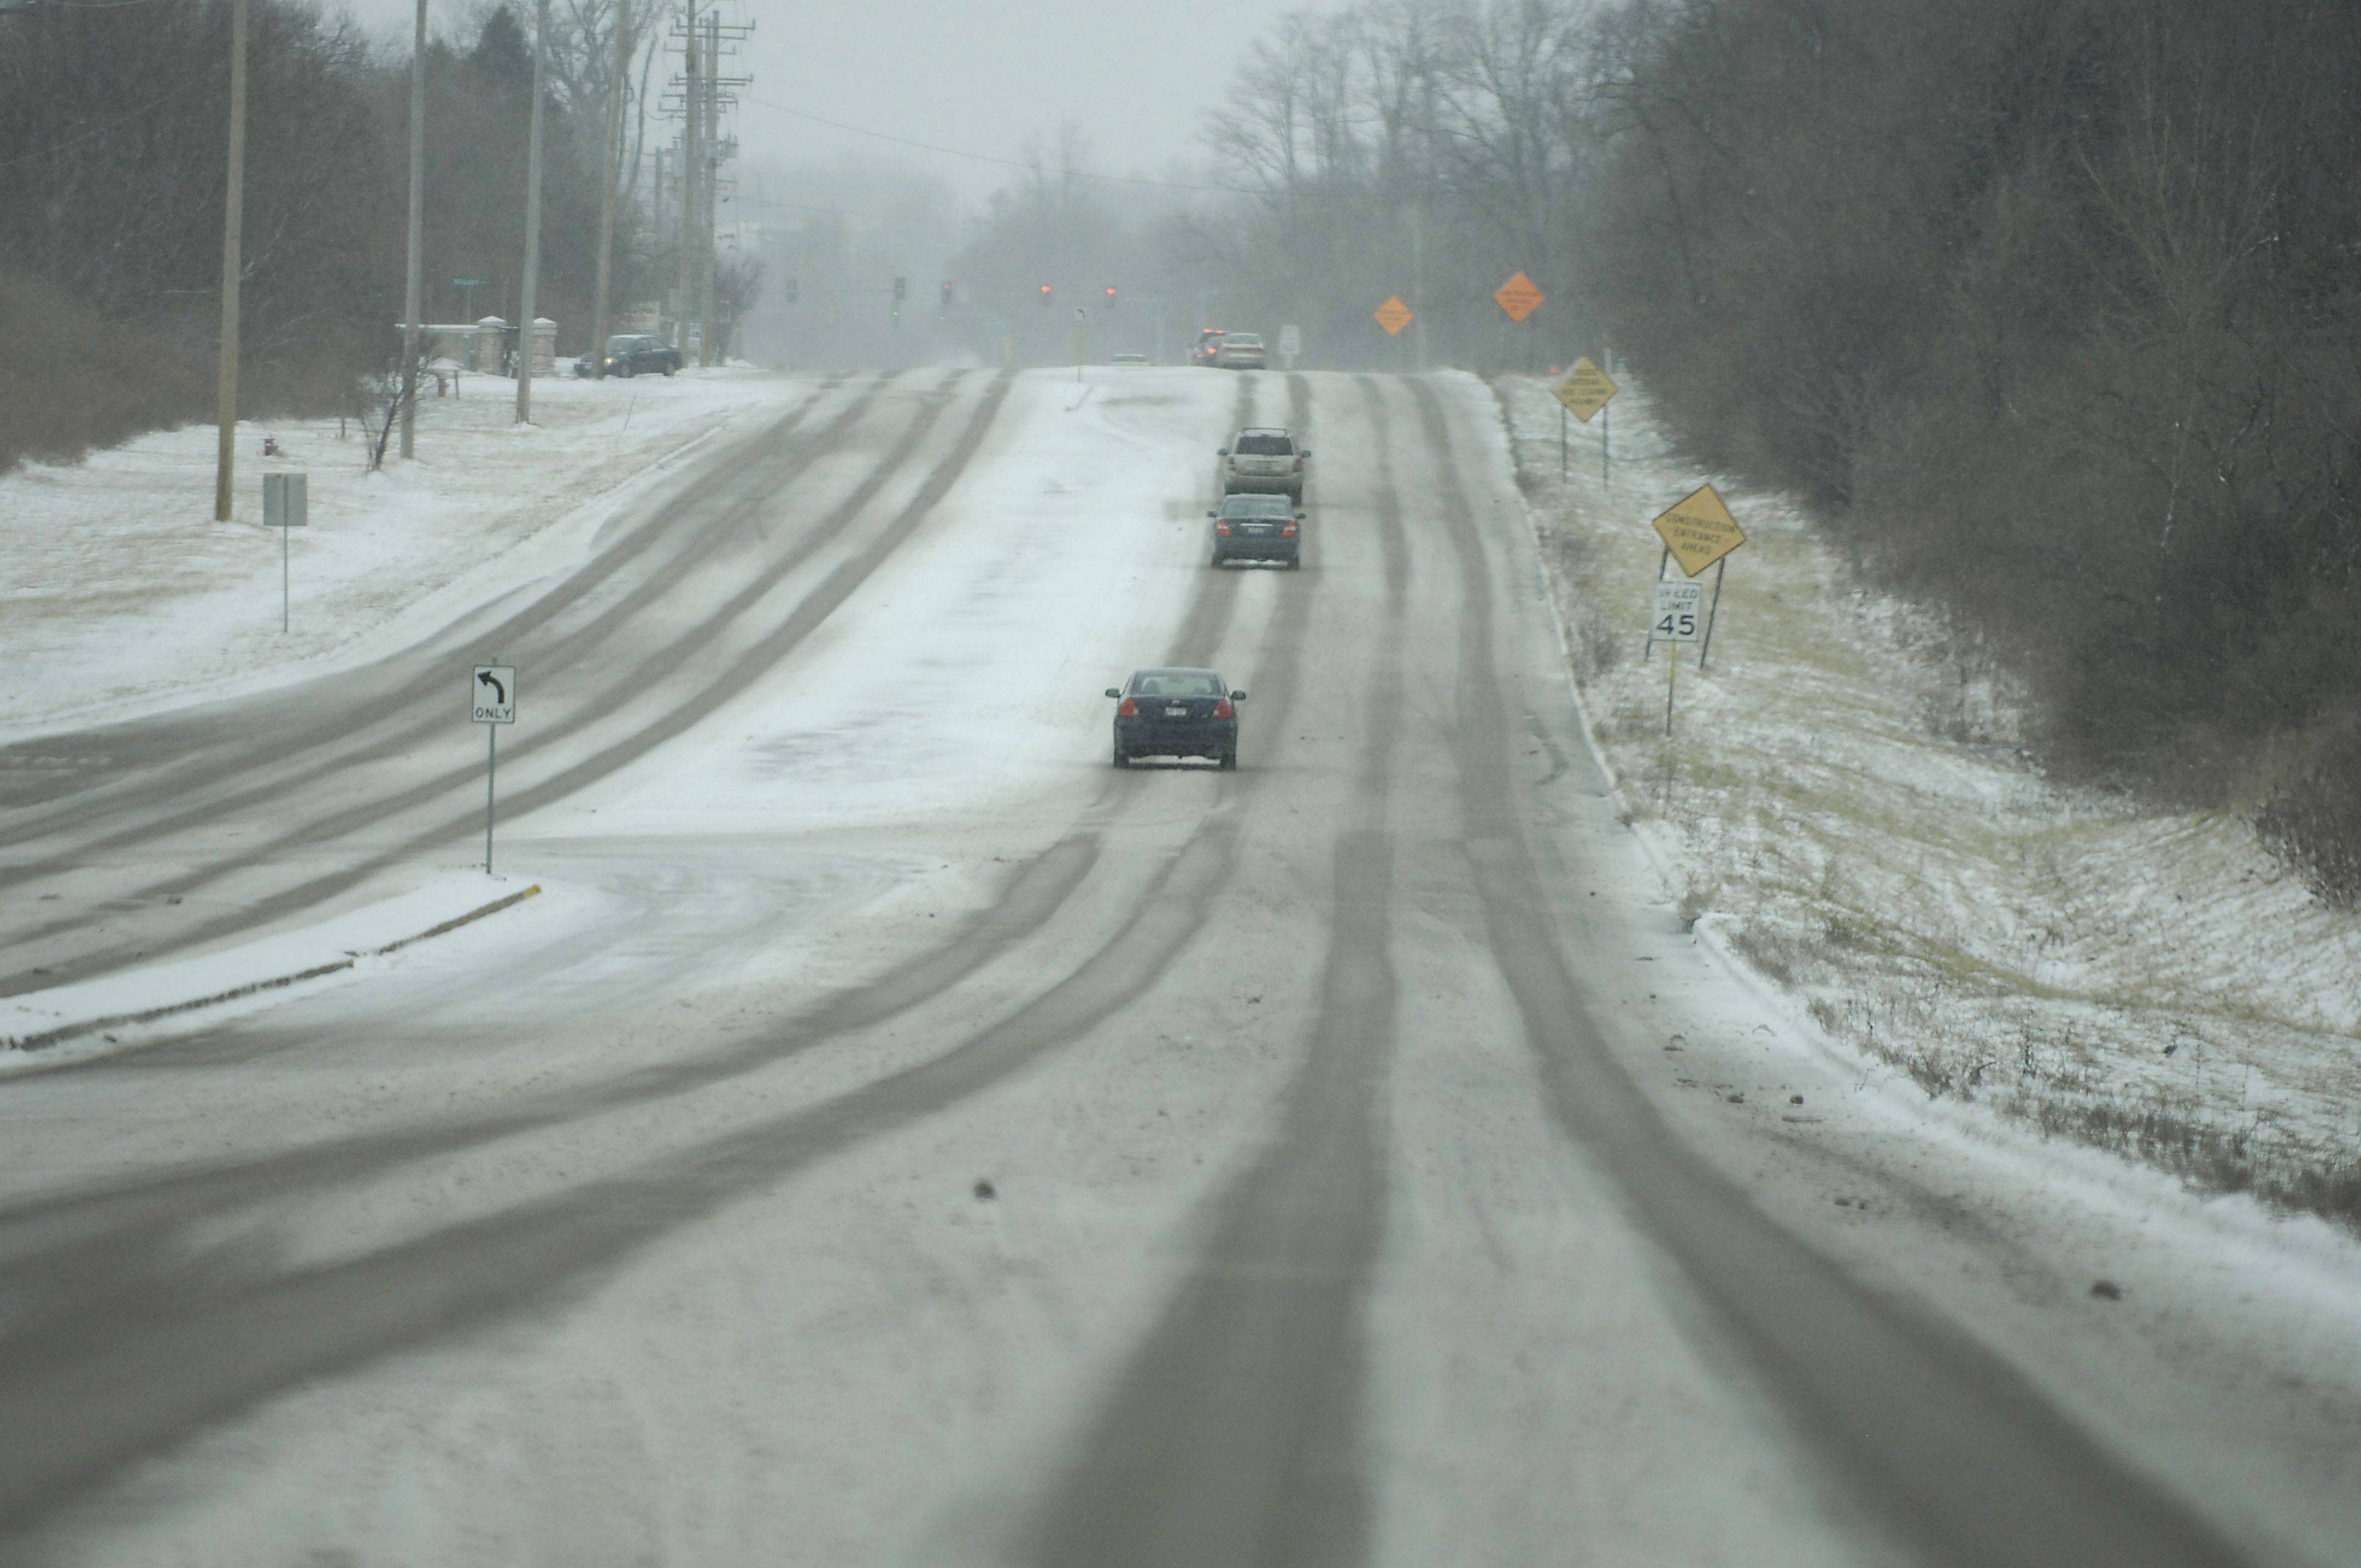 Sparse traffic moves cautiously slow on Route 25 in Carpentersville Sunday afternoon.